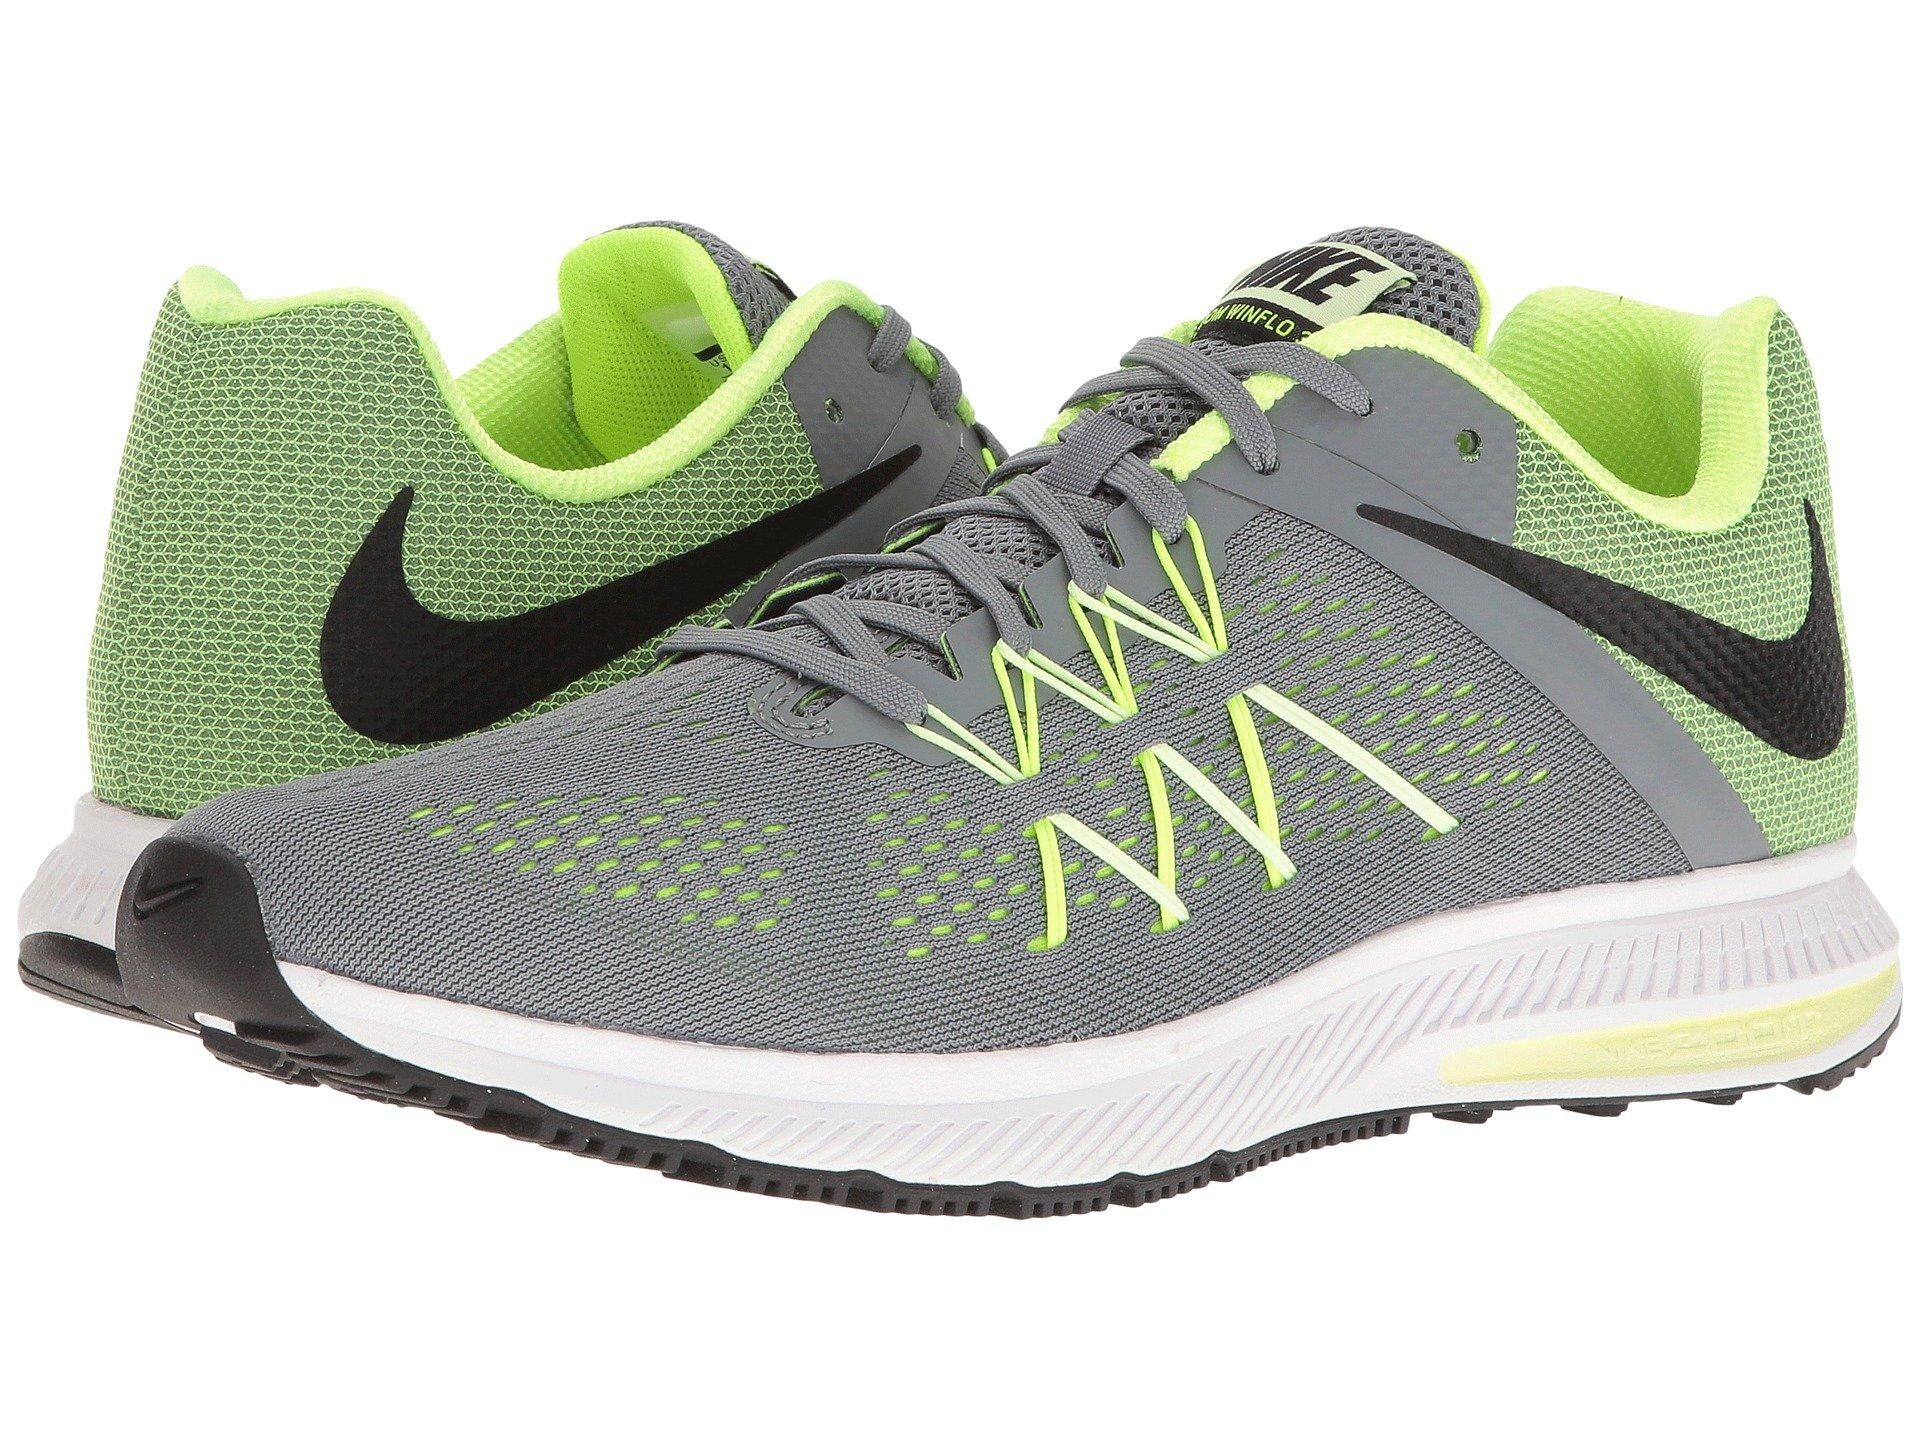 e42c57bab11c Nike Zoom Winflo 3 In Cool Grey Black Volt Barely Volt